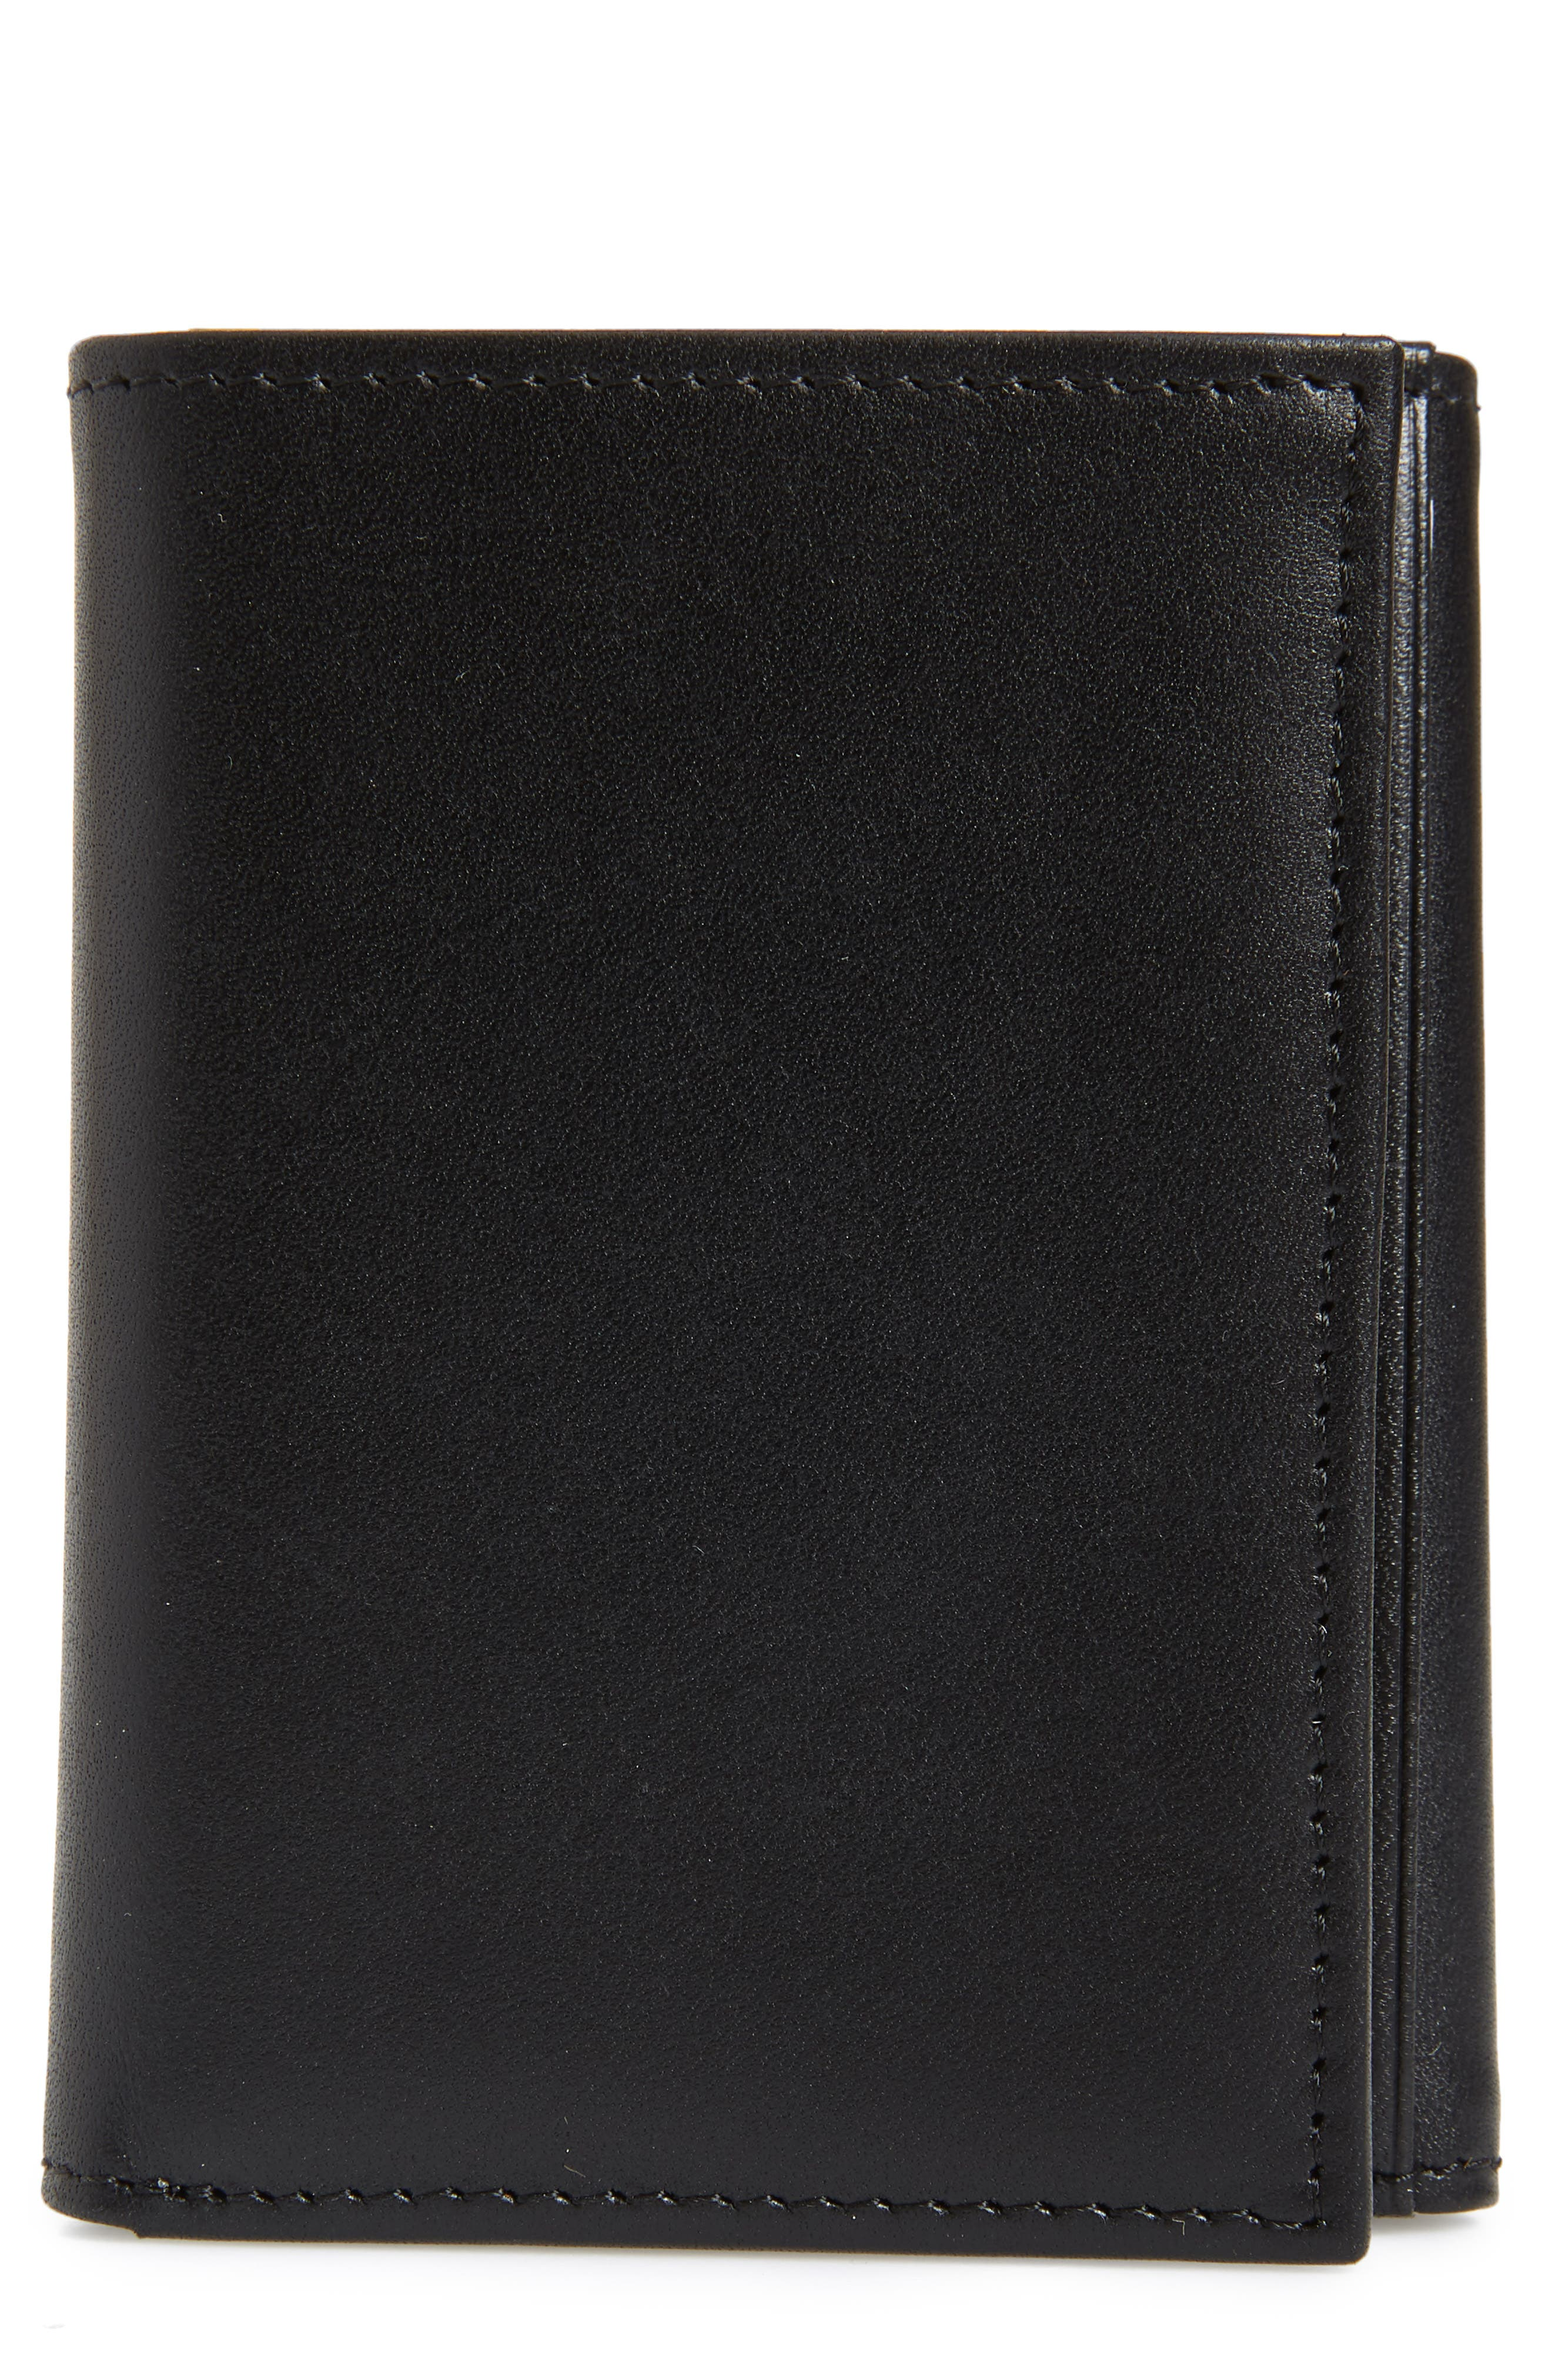 Chelsea Leather Trifold Wallet,                         Main,                         color, BLACK